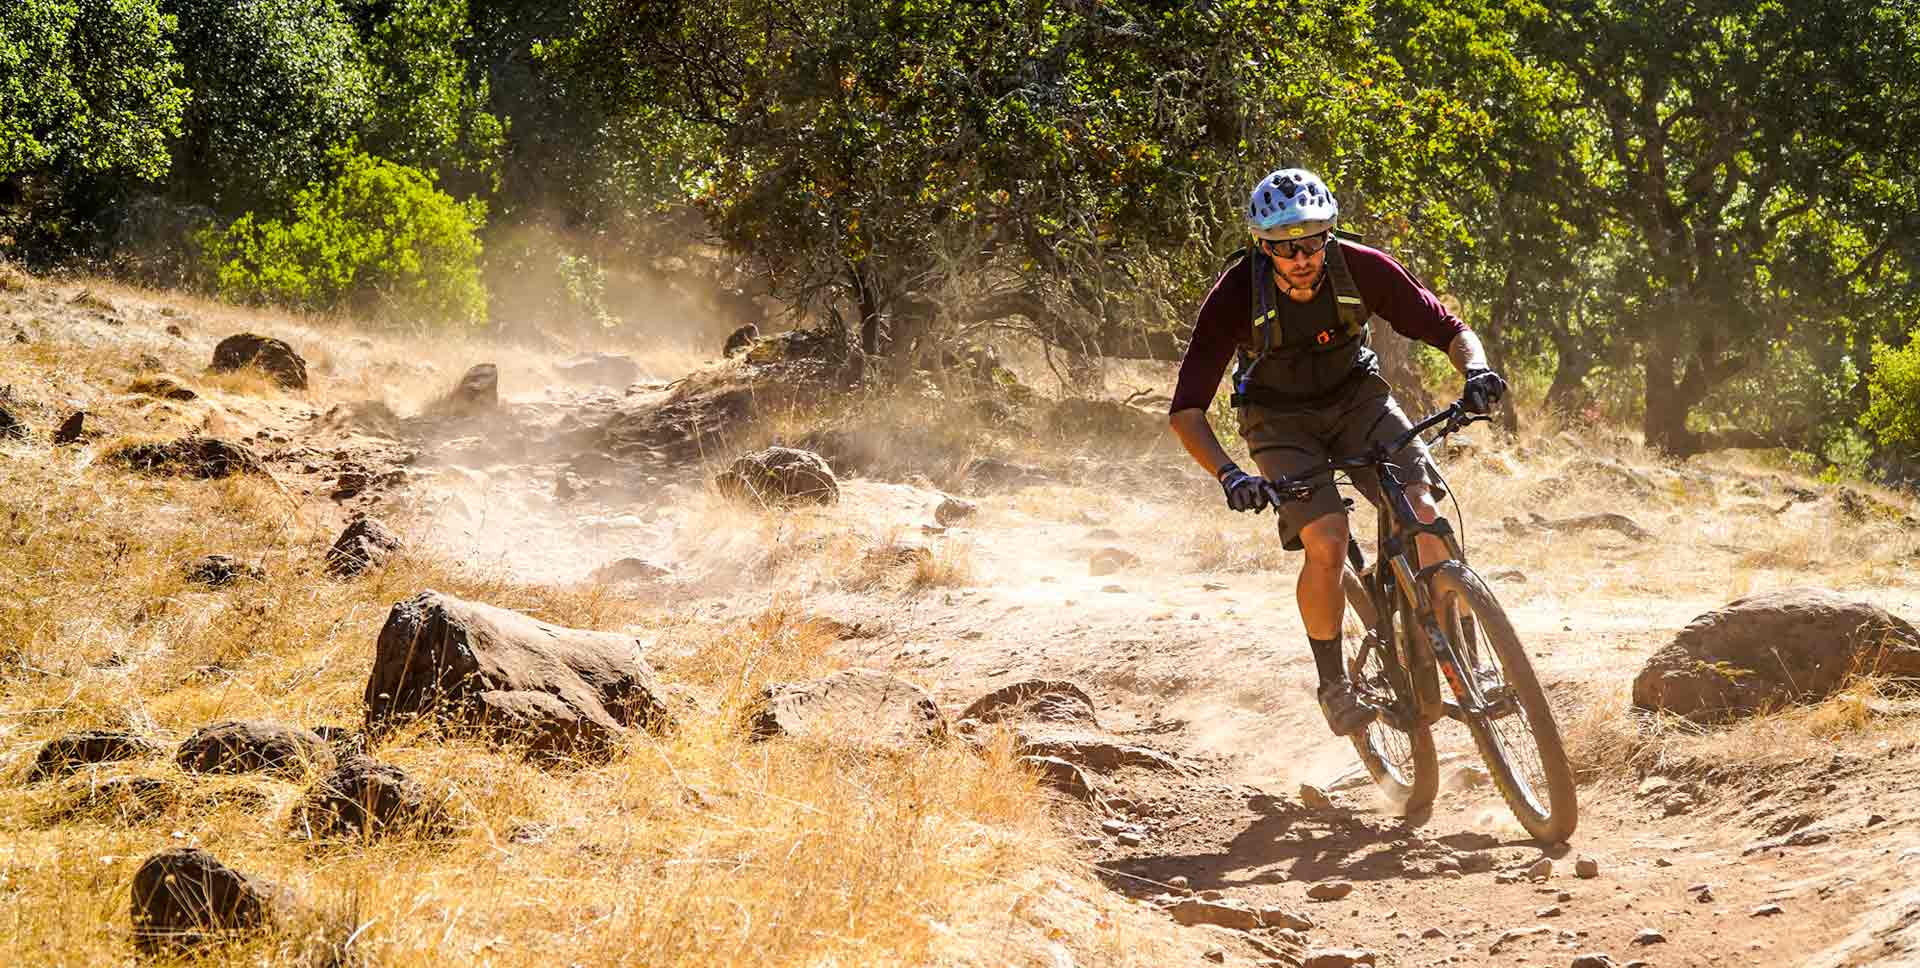 Awesome Parks for Mountain Biking | SonomaCounty.com